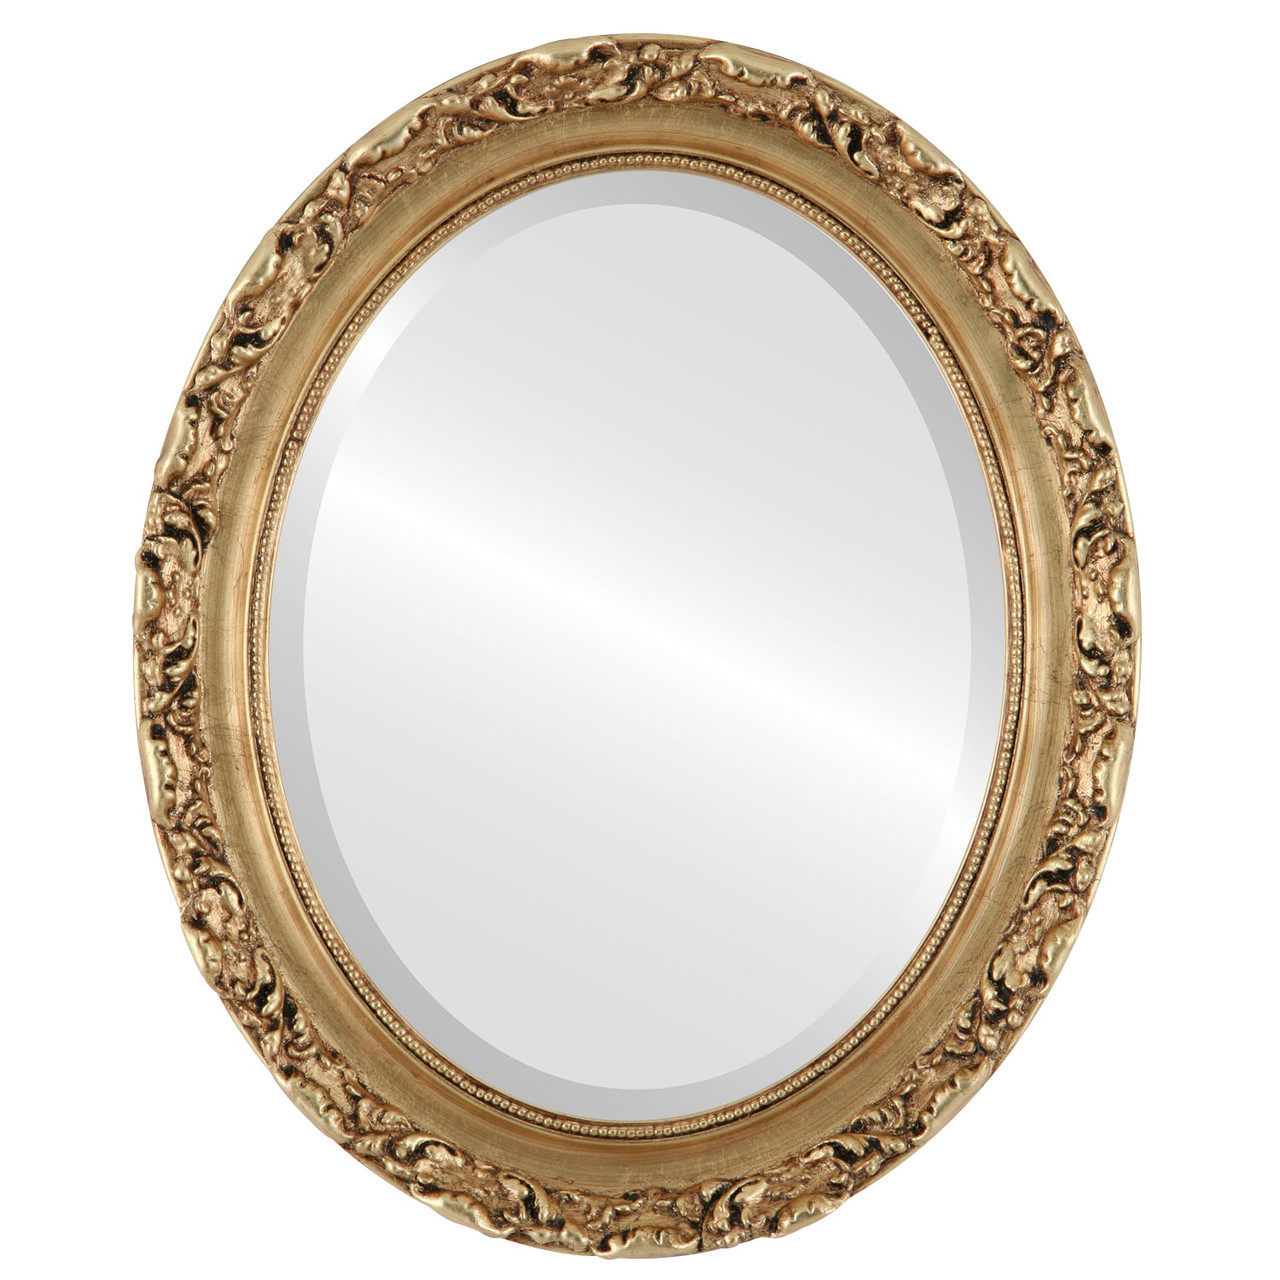 Vintage Gold Oval Mirrors from $177 | Free Shipping